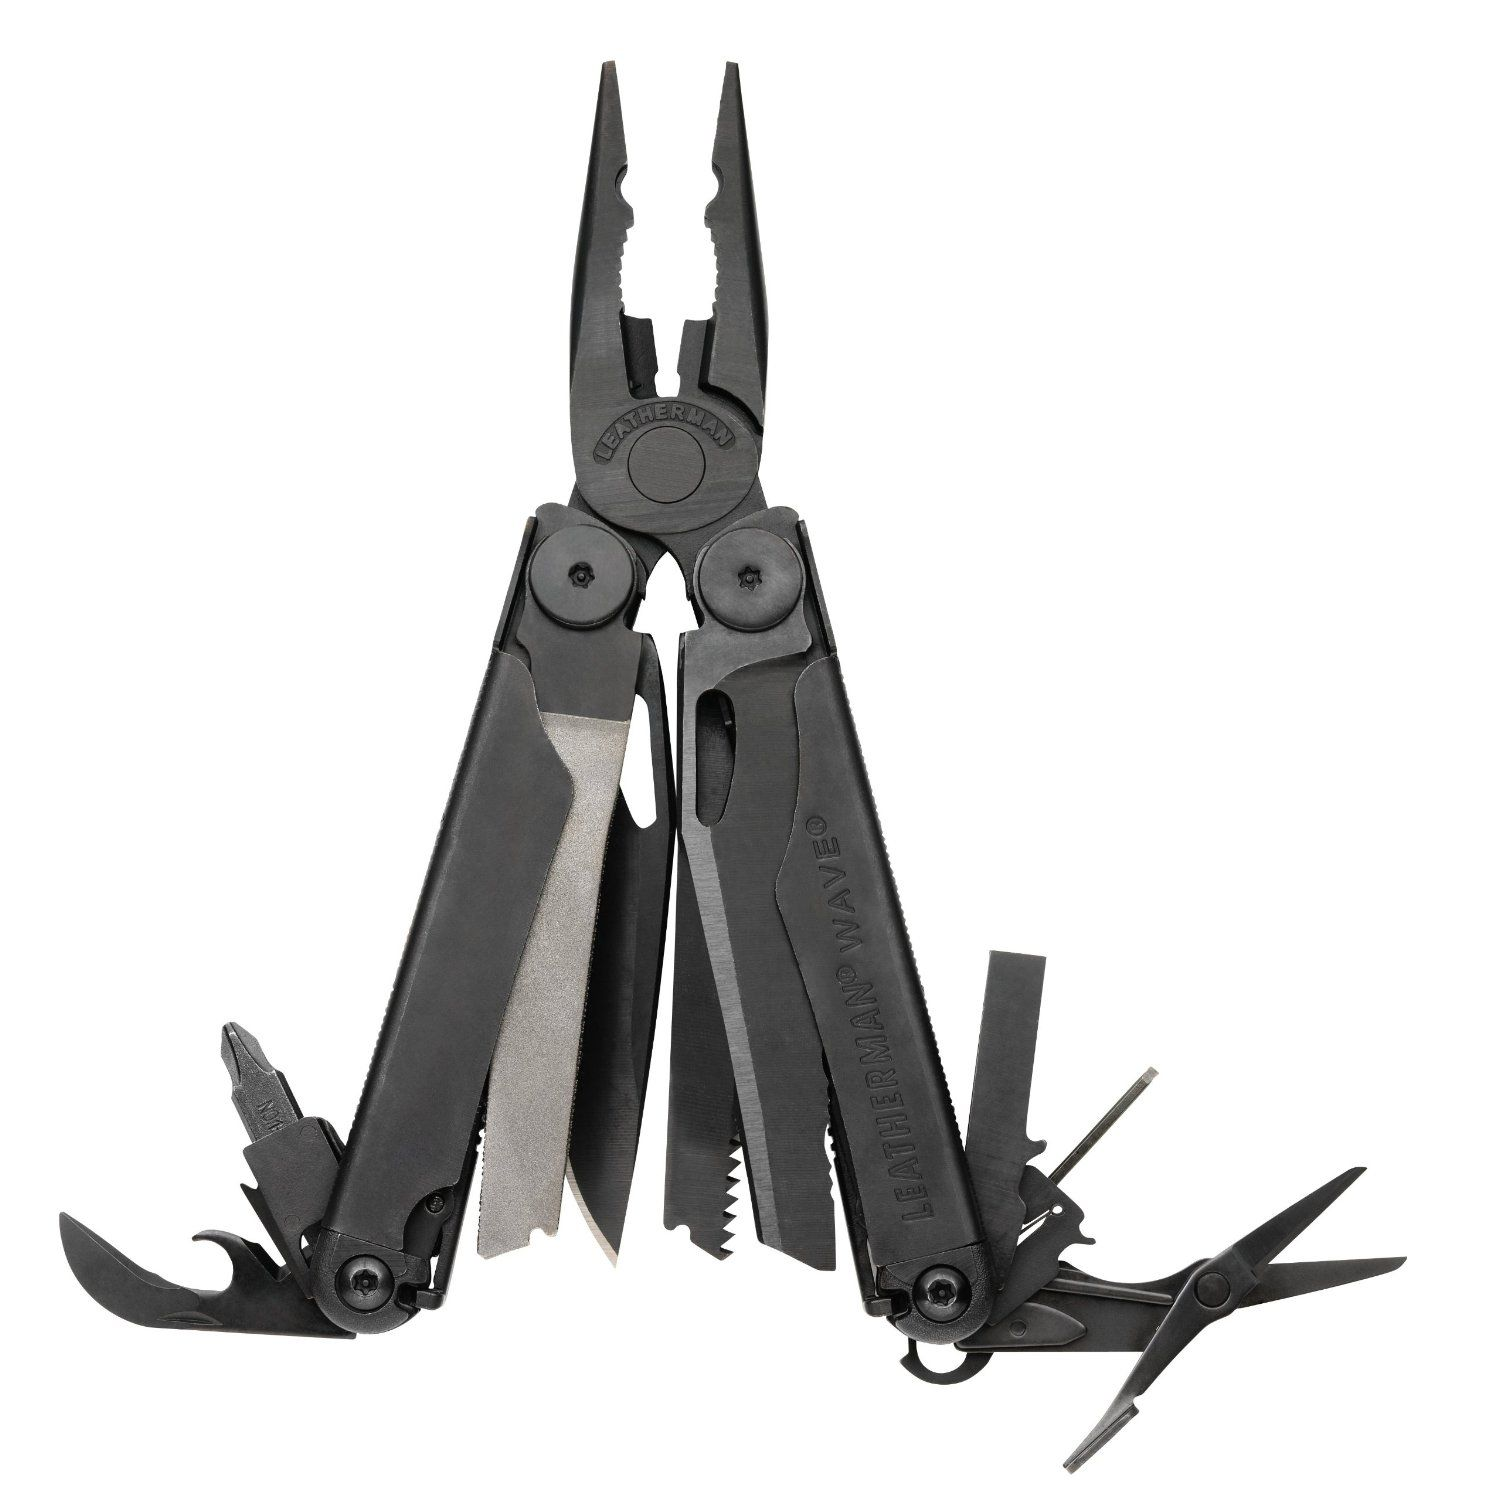 Leatherman Wave Multifunktionswerkzeug: Amazon.de: Baumarkt